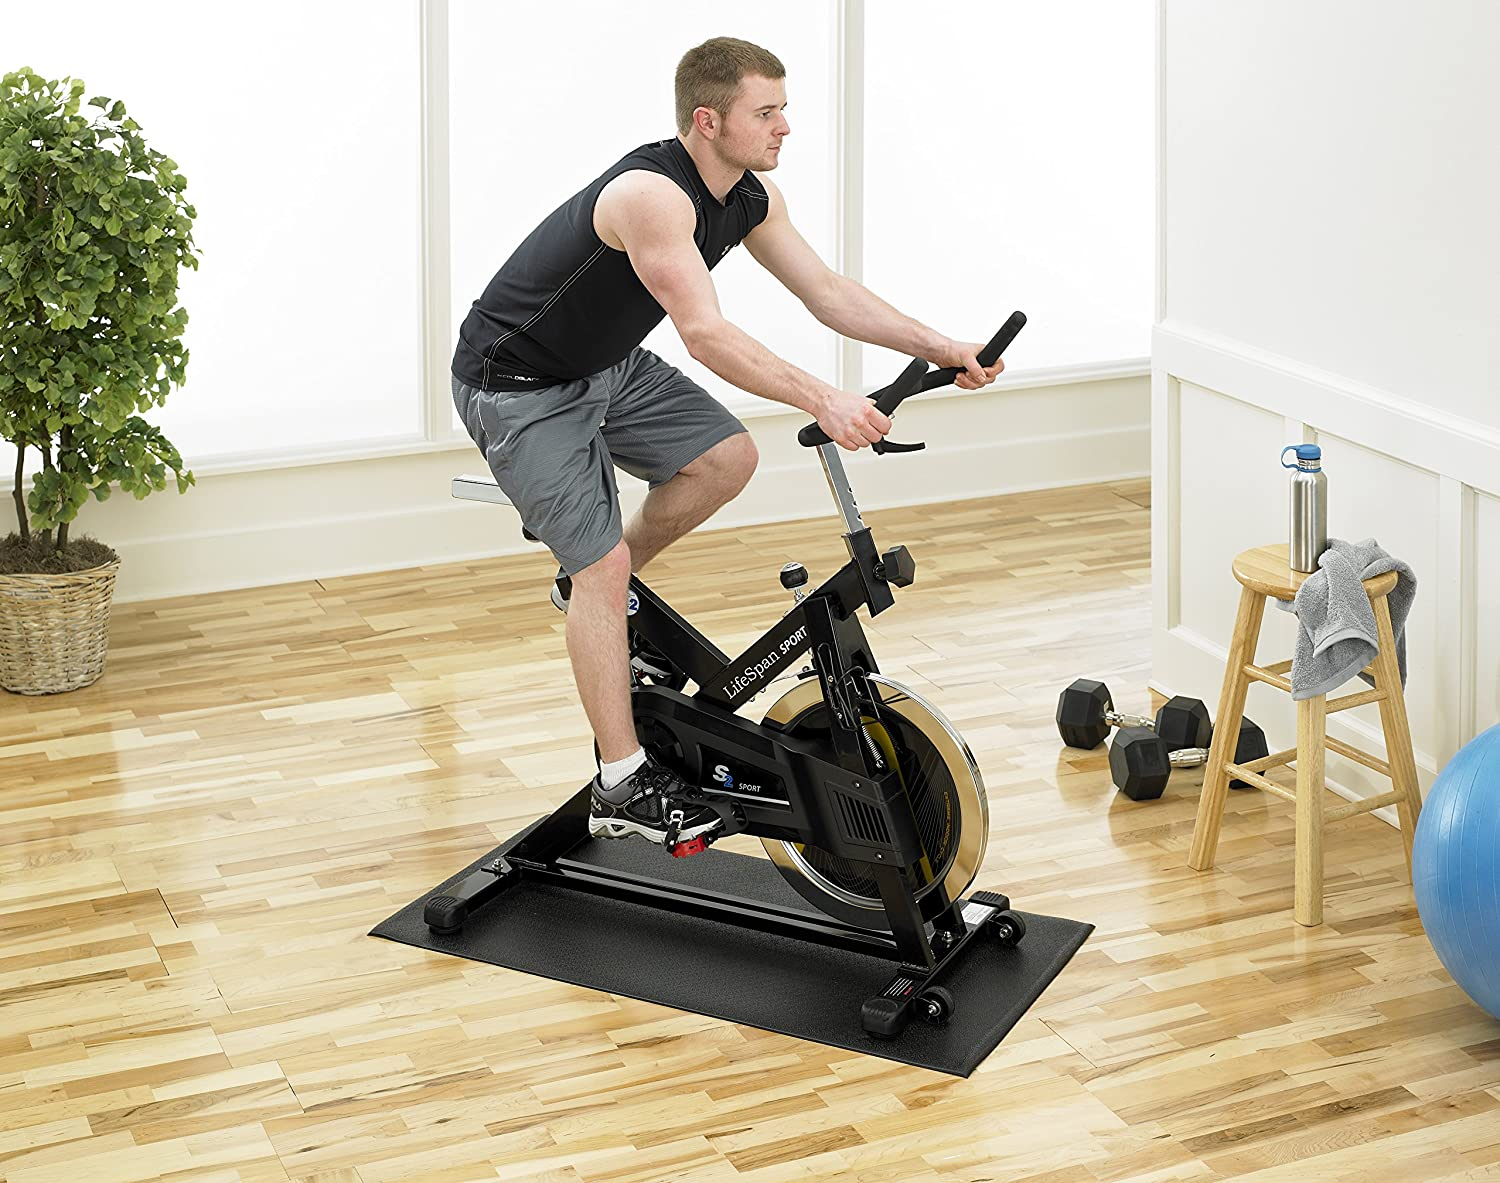 amazoncom supermats heavy duty pvc mat ideal for indoor cycles and exercise bikes 24inch x 46inch exercise mats sports u0026 outdoors